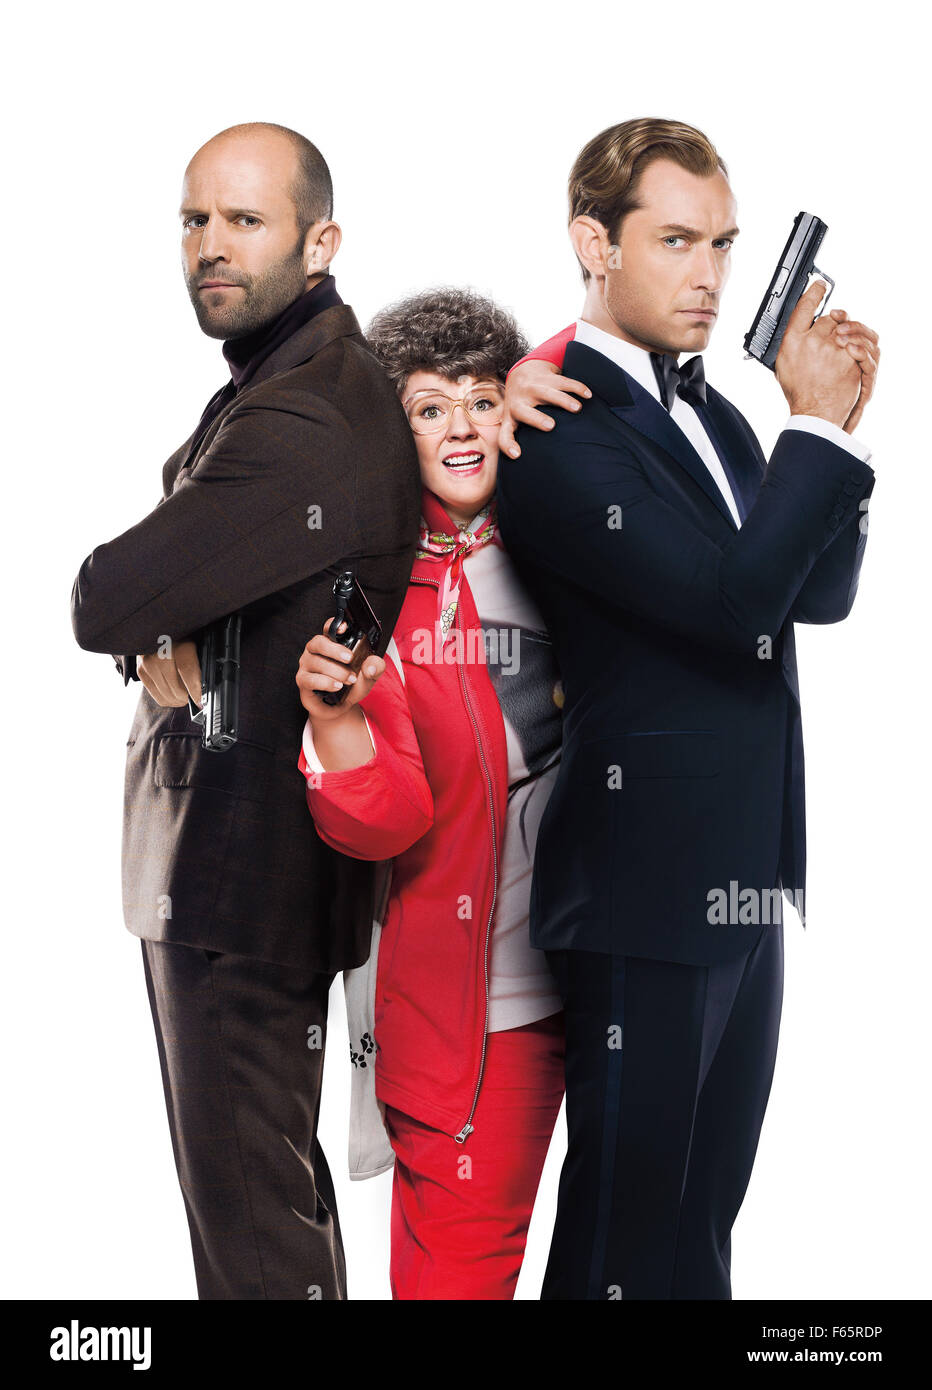 Spy Year : 2015 USA Director : Paul Feig Jason Statham, Melissa McCarthy, Jude Law Movie poster (textless) - Stock Image